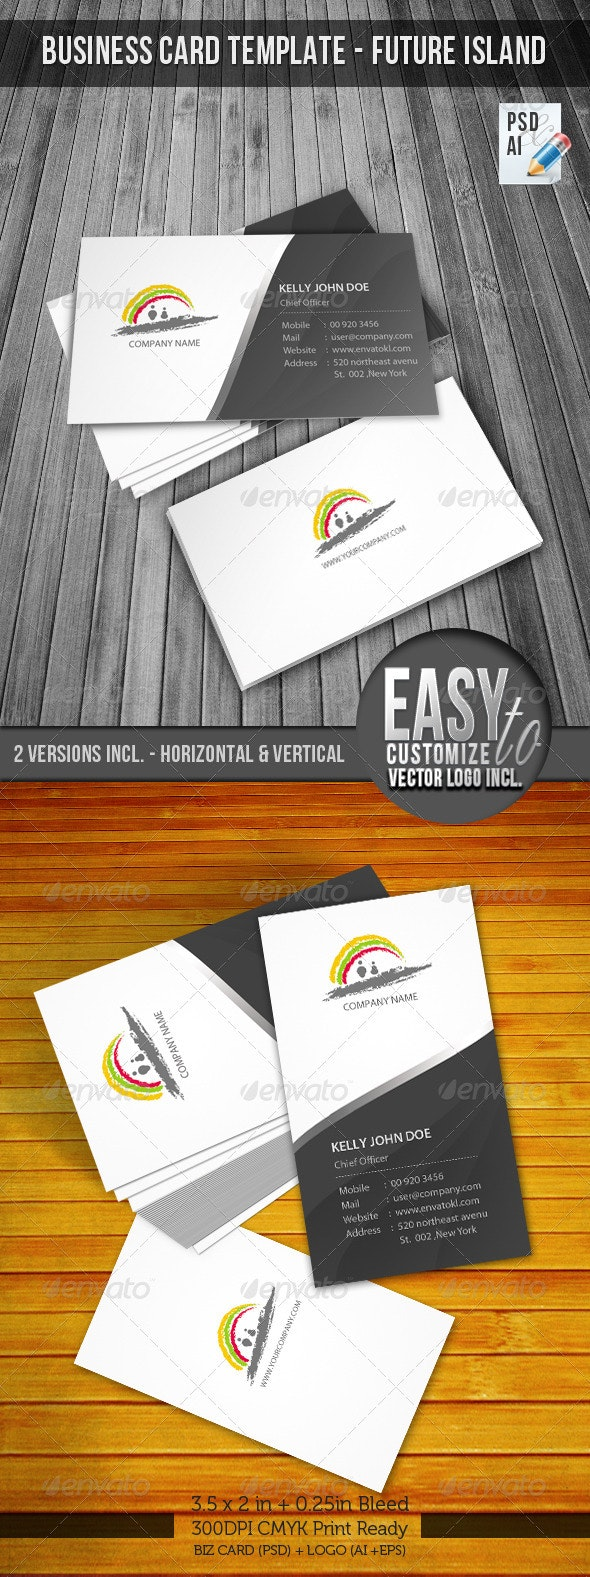 Corporate Business Card & Logo - Future Island - Corporate Business Cards